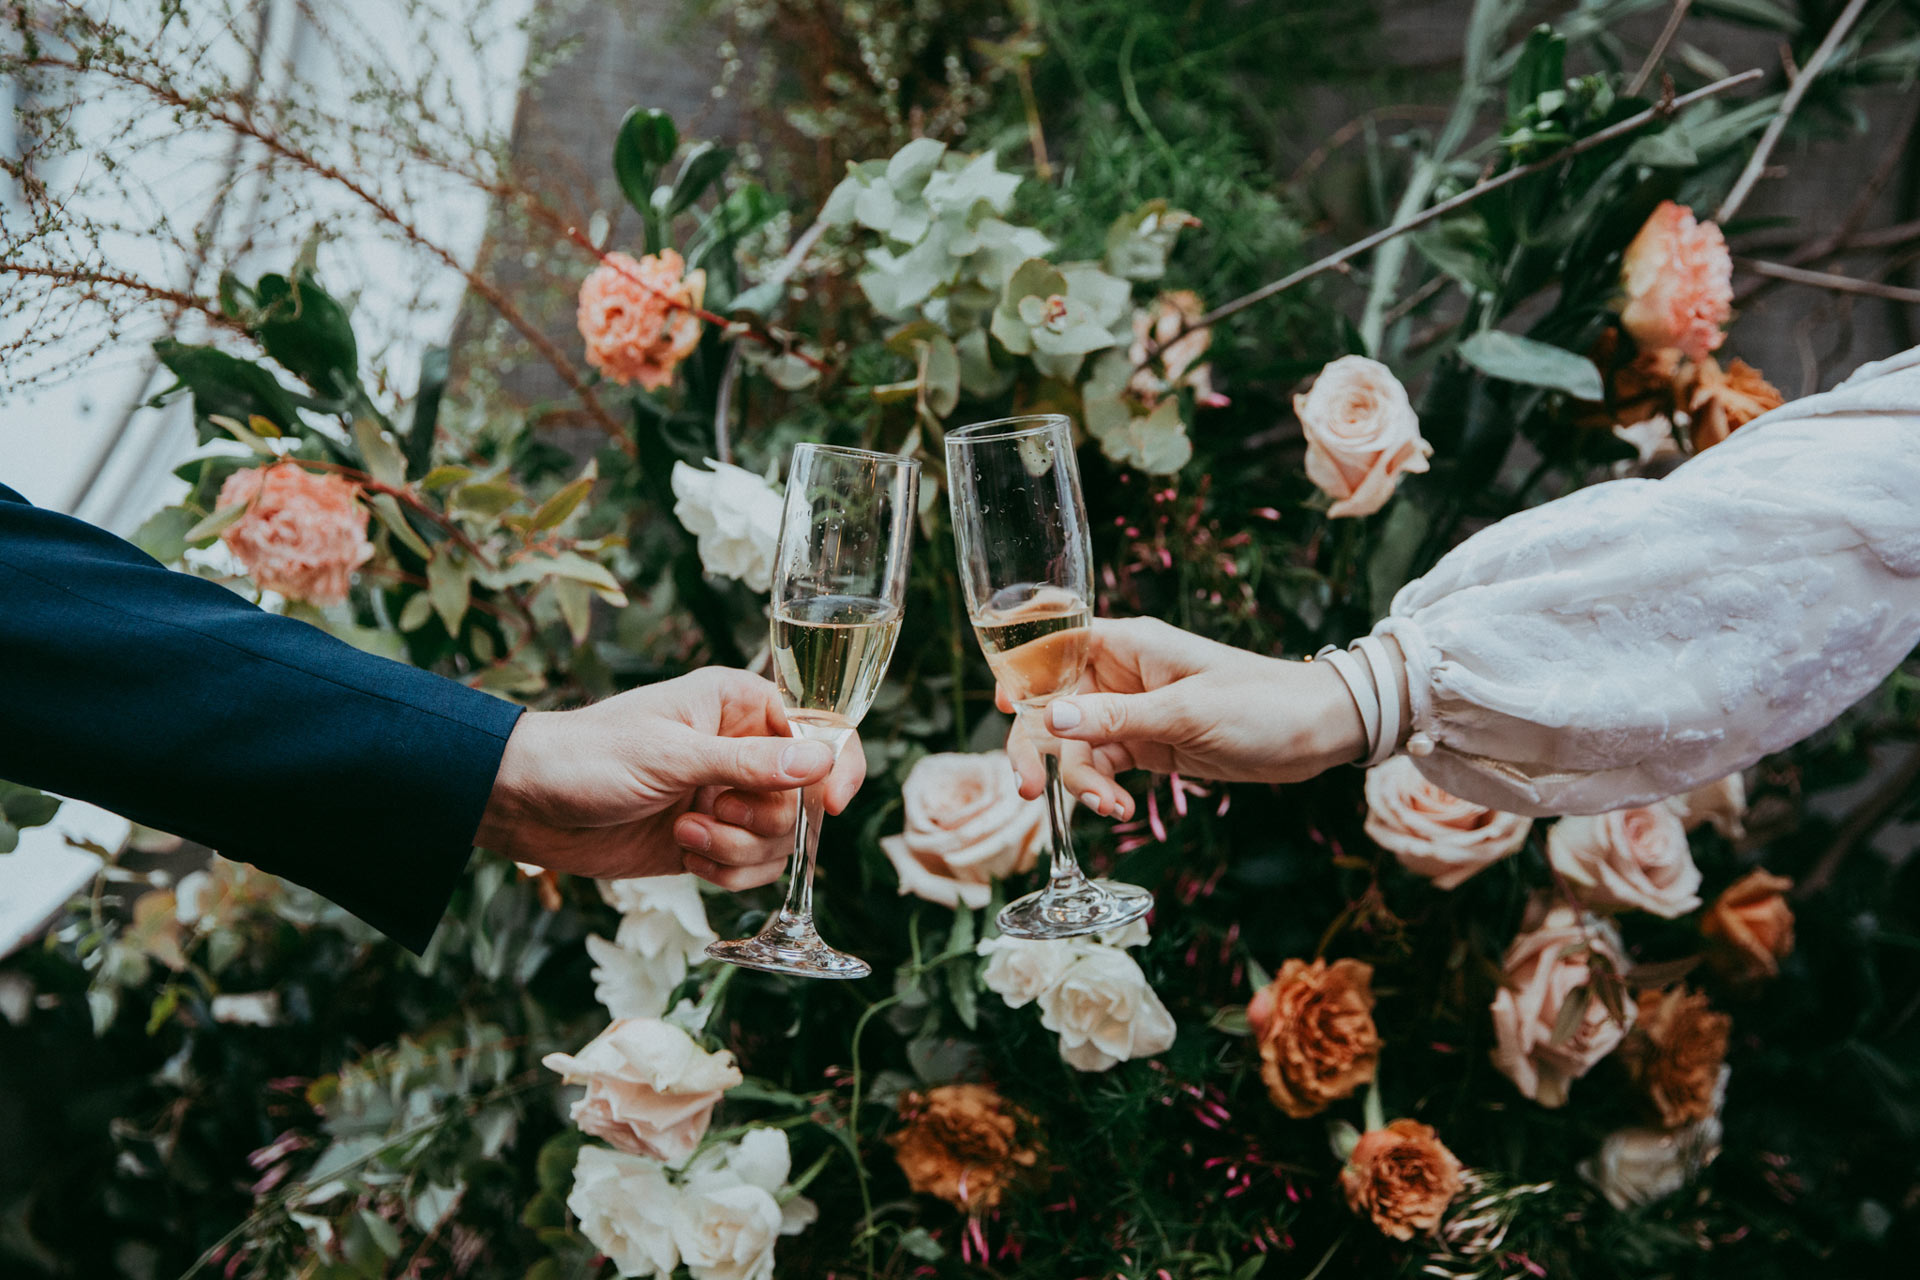 Kristine and Justin toasting with champagne on their wedding day at the Maritime Hotel in NYC with custom Cynthia Rowley wedding dress and roses